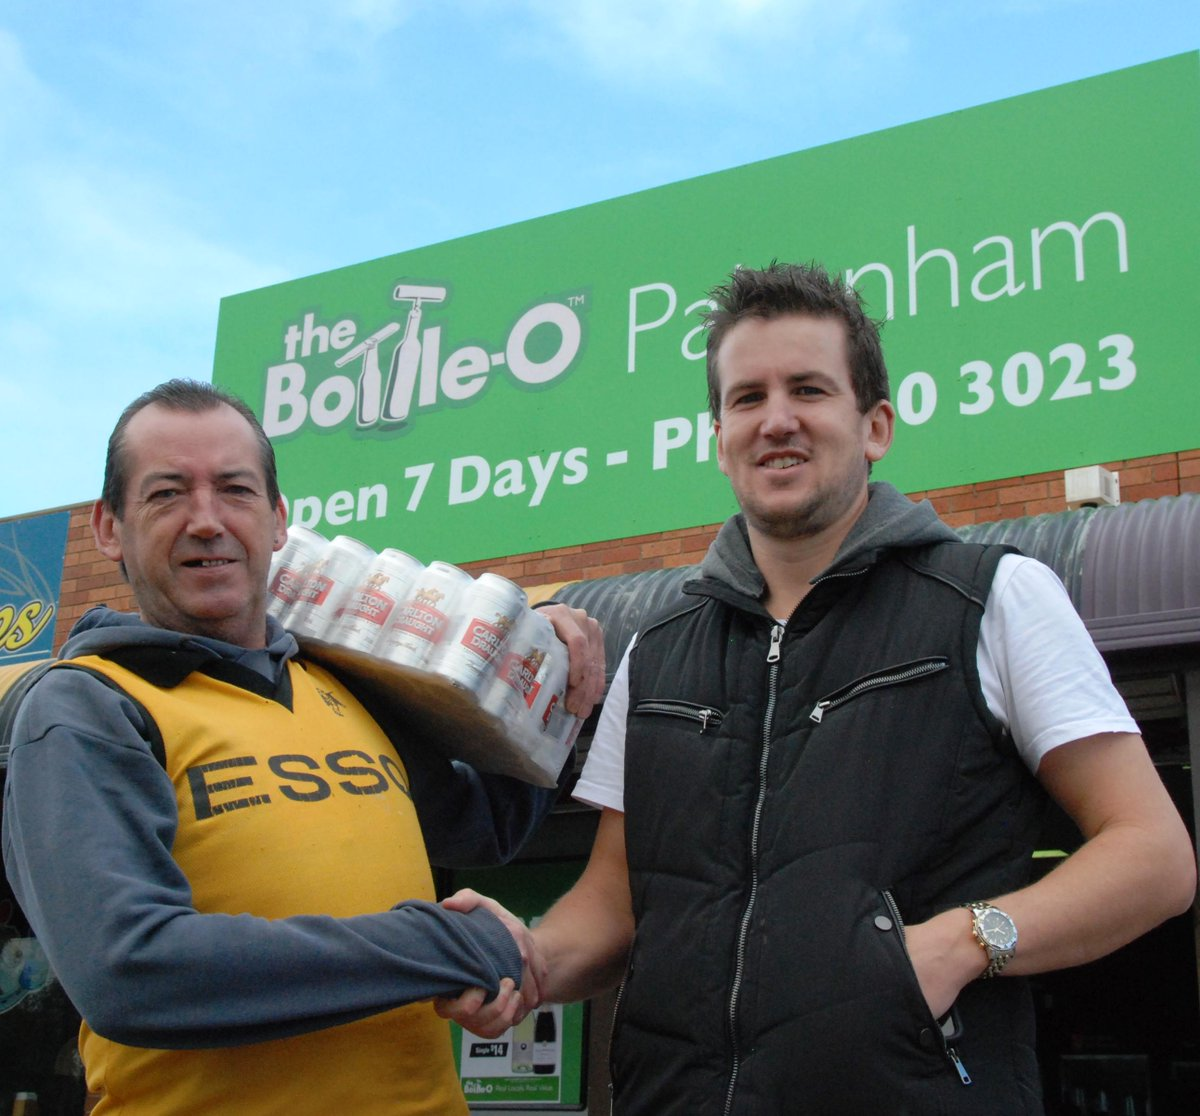 Andy from Pakenham was first through the doors at his newly re-opened Bottle-O in Racecourse Rd today ://t.co/3nNIw5rue5\